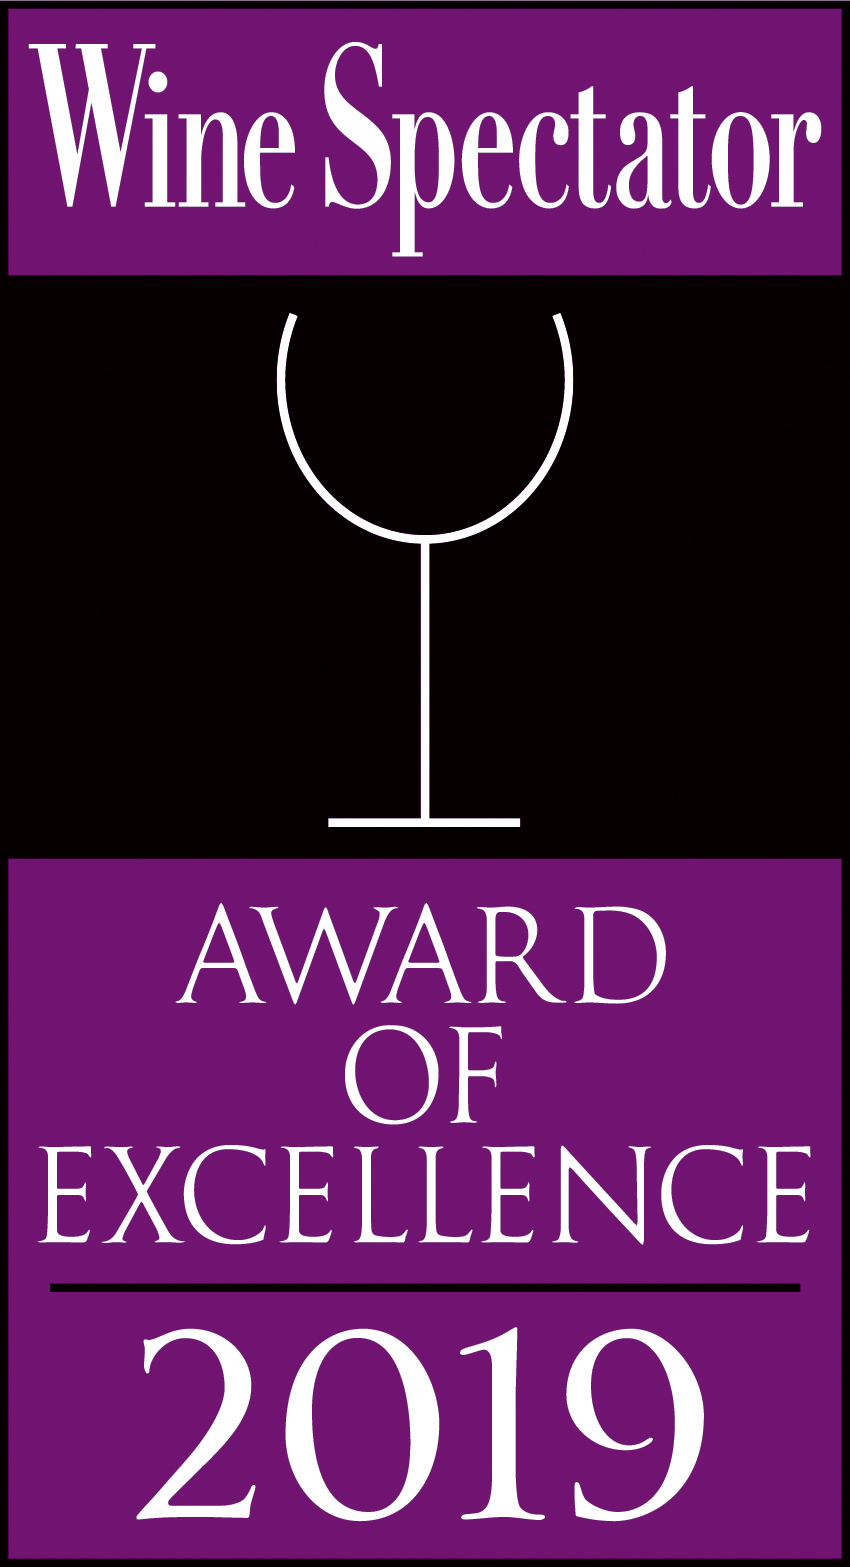 2019 Wine Spectator Award - The juice is worth the squeeze